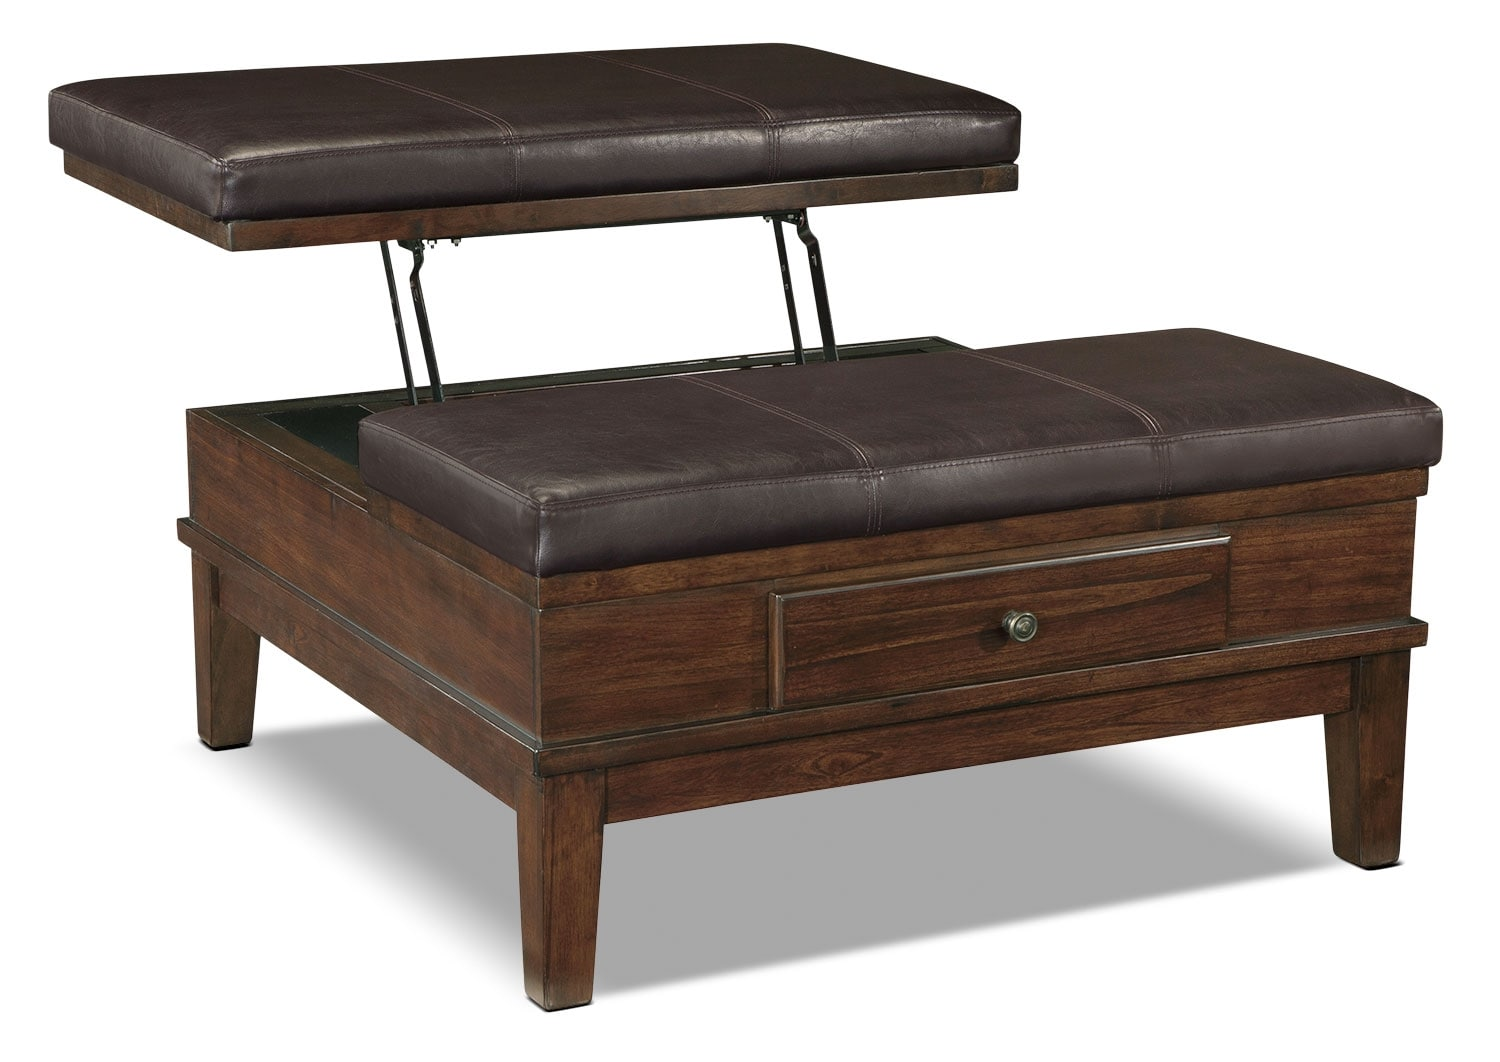 gately ottoman coffee table with lift top the brick. Black Bedroom Furniture Sets. Home Design Ideas